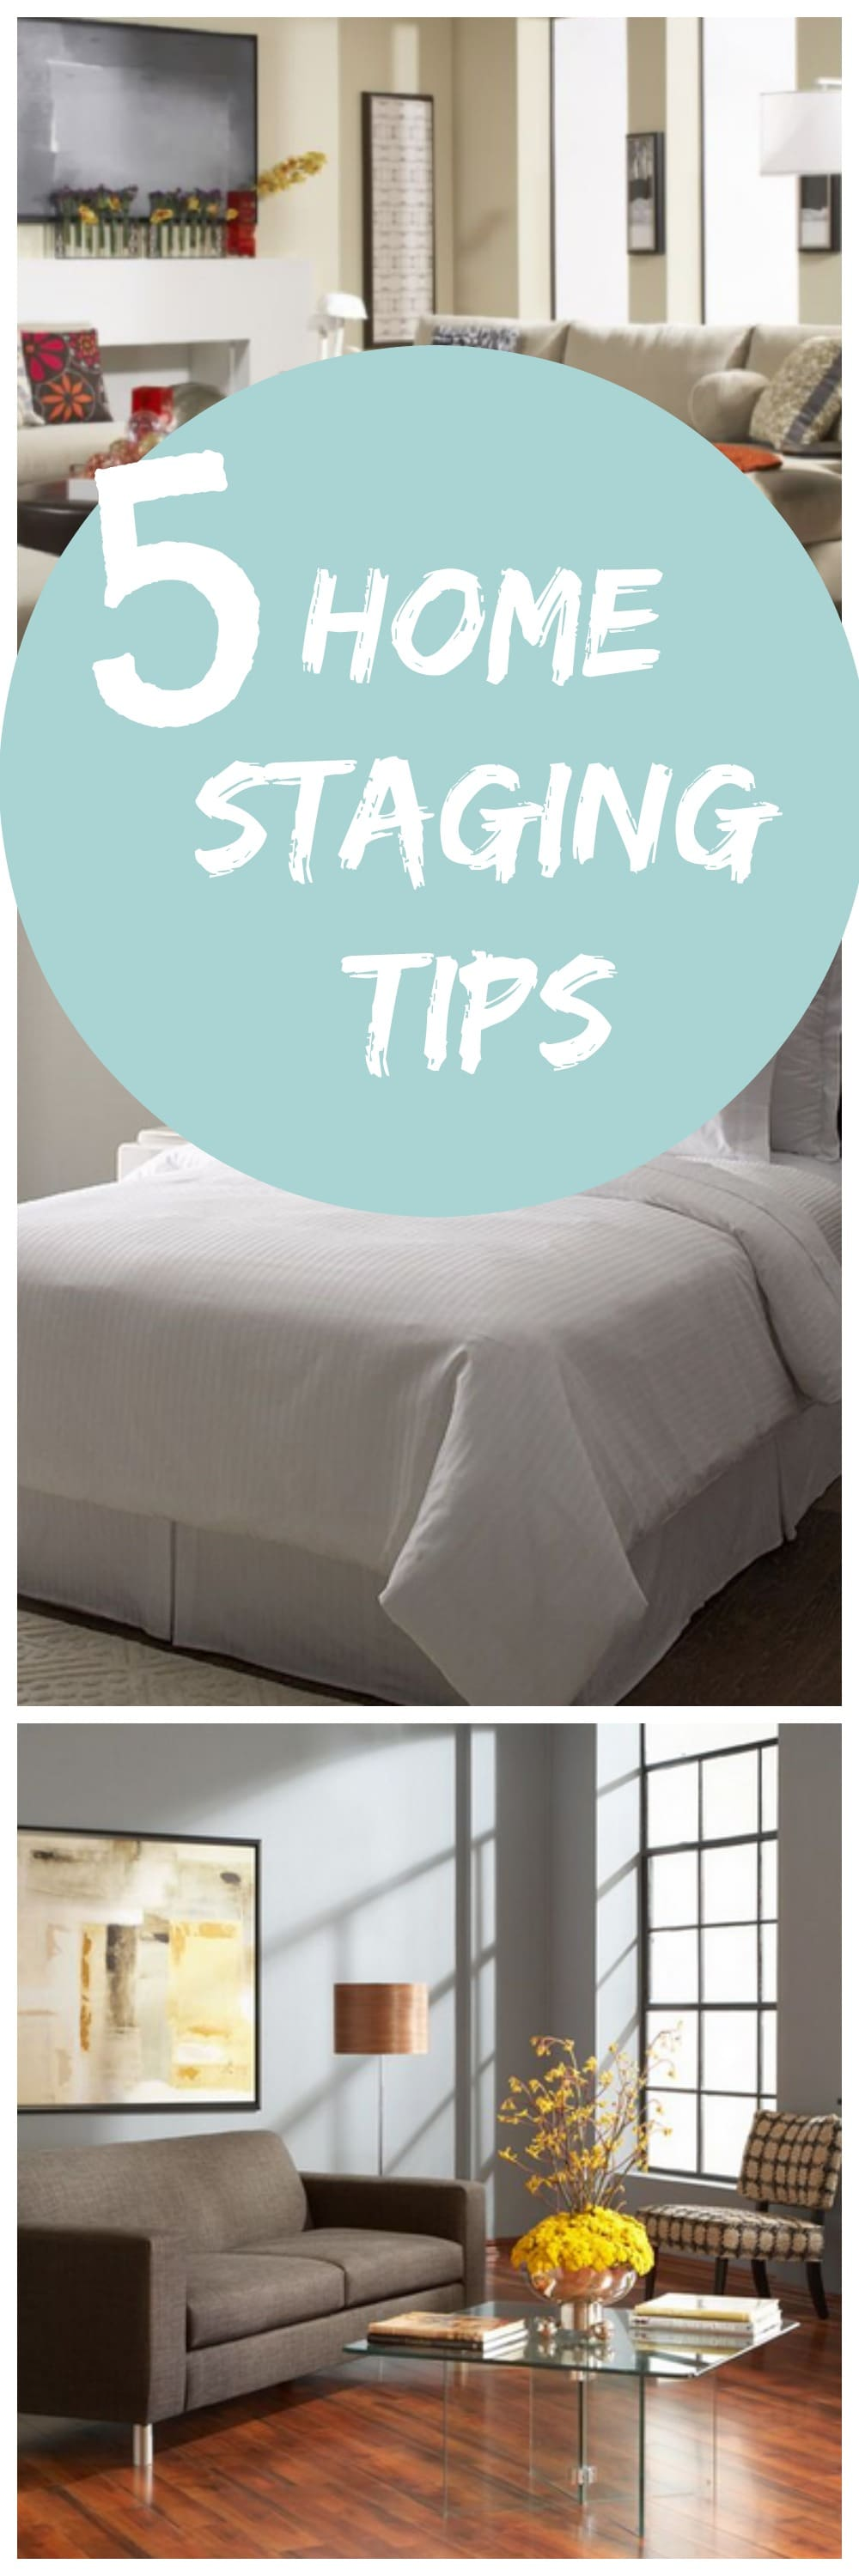 5 Home Staging Tips with CORT Furniture Rental. 5 Home Staging Tips with CORT Furniture Rental   Mommy Hates Cooking